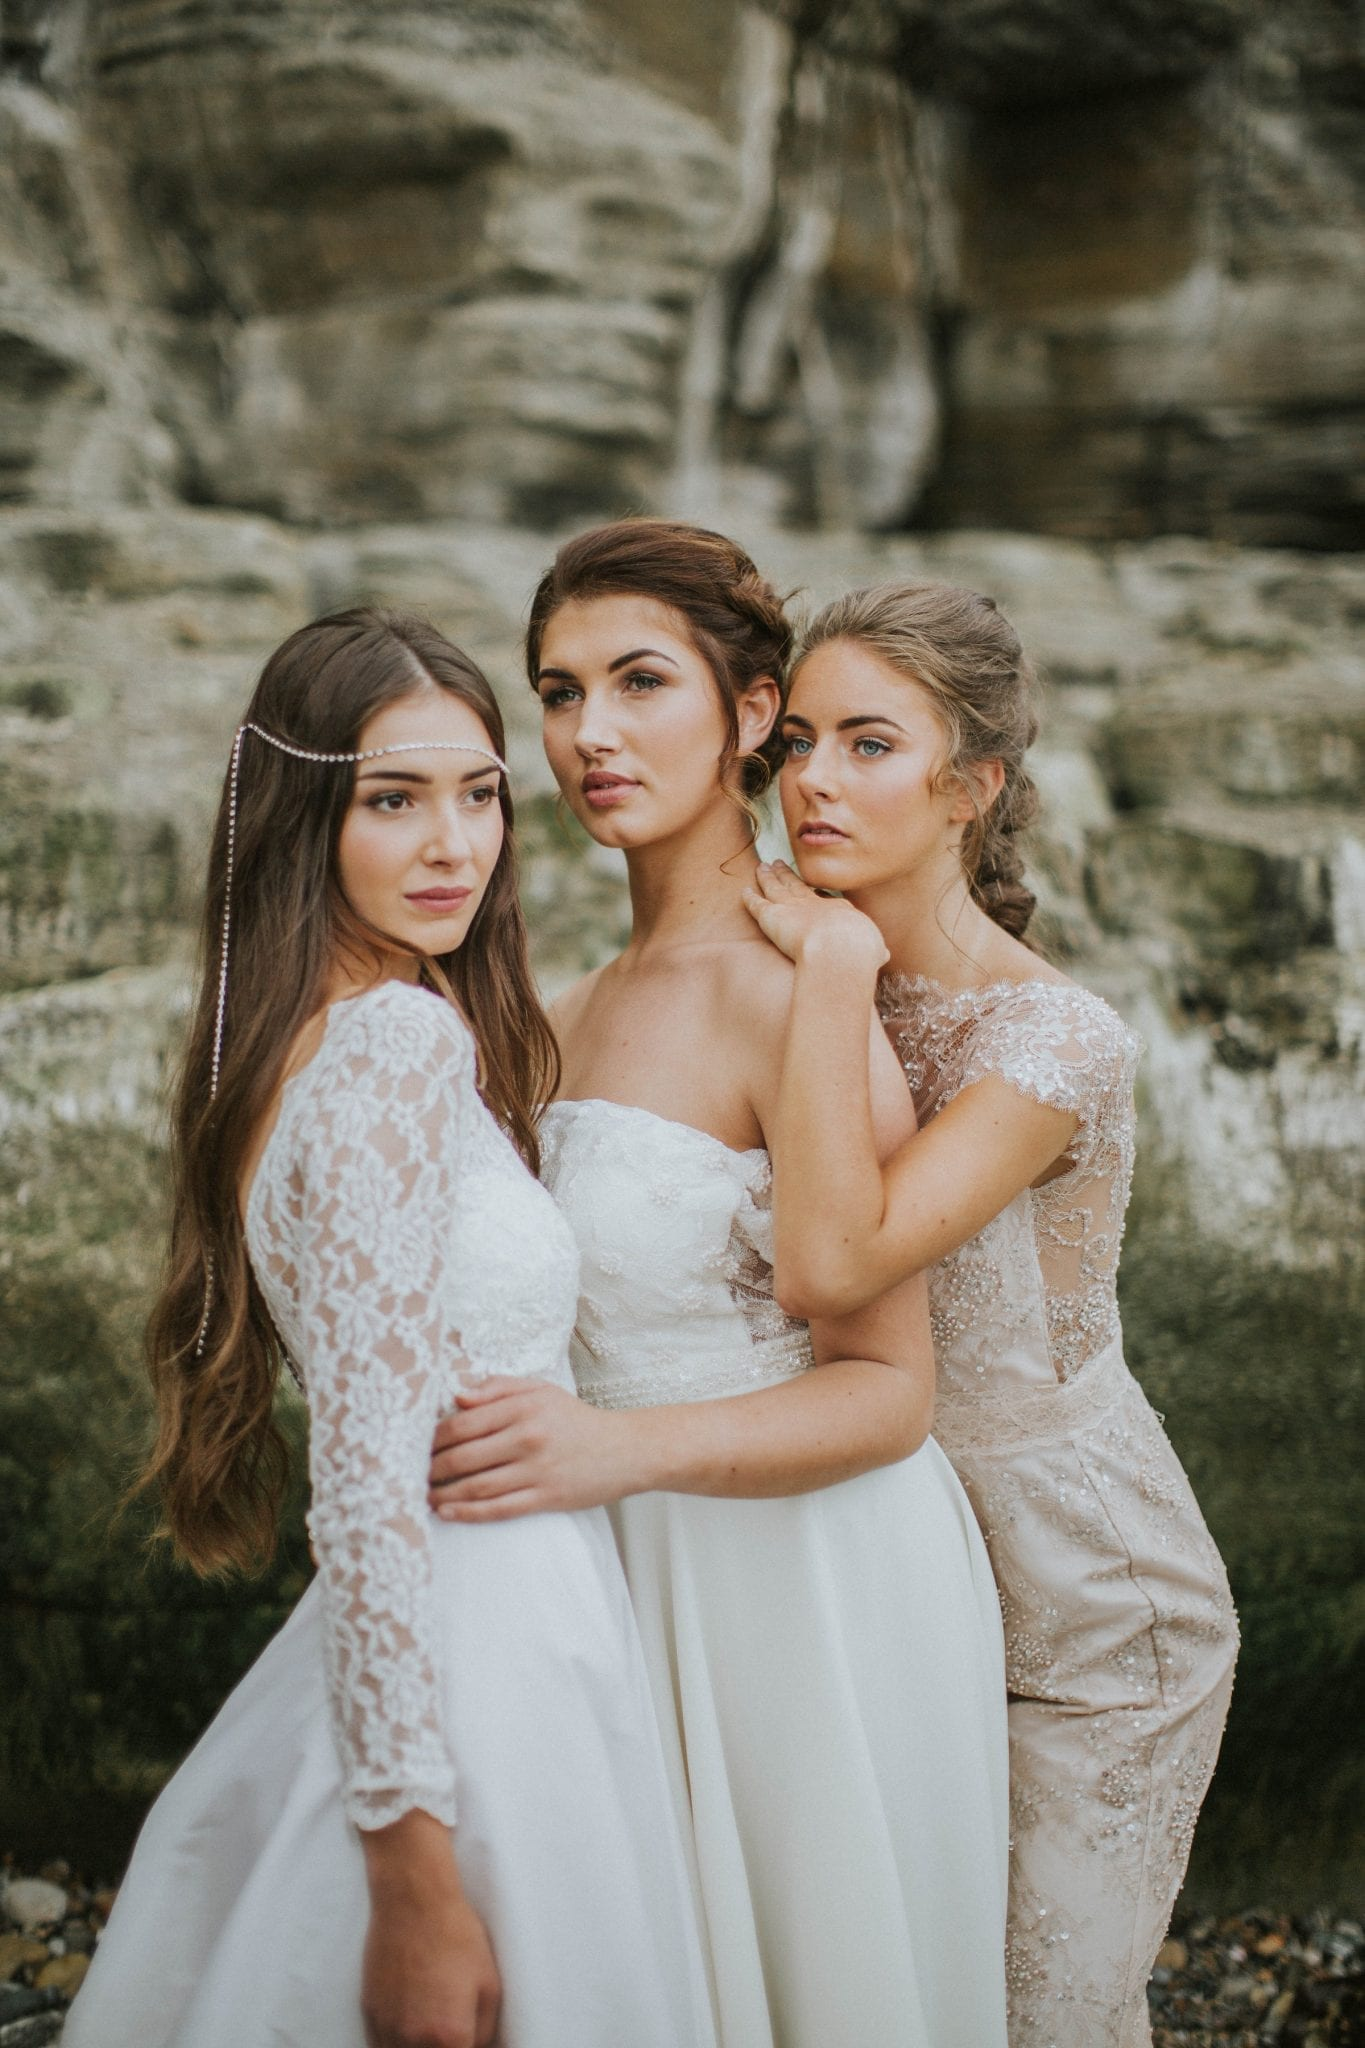 Precilla, Charlotte and Coco by Natalie Pluck Photography